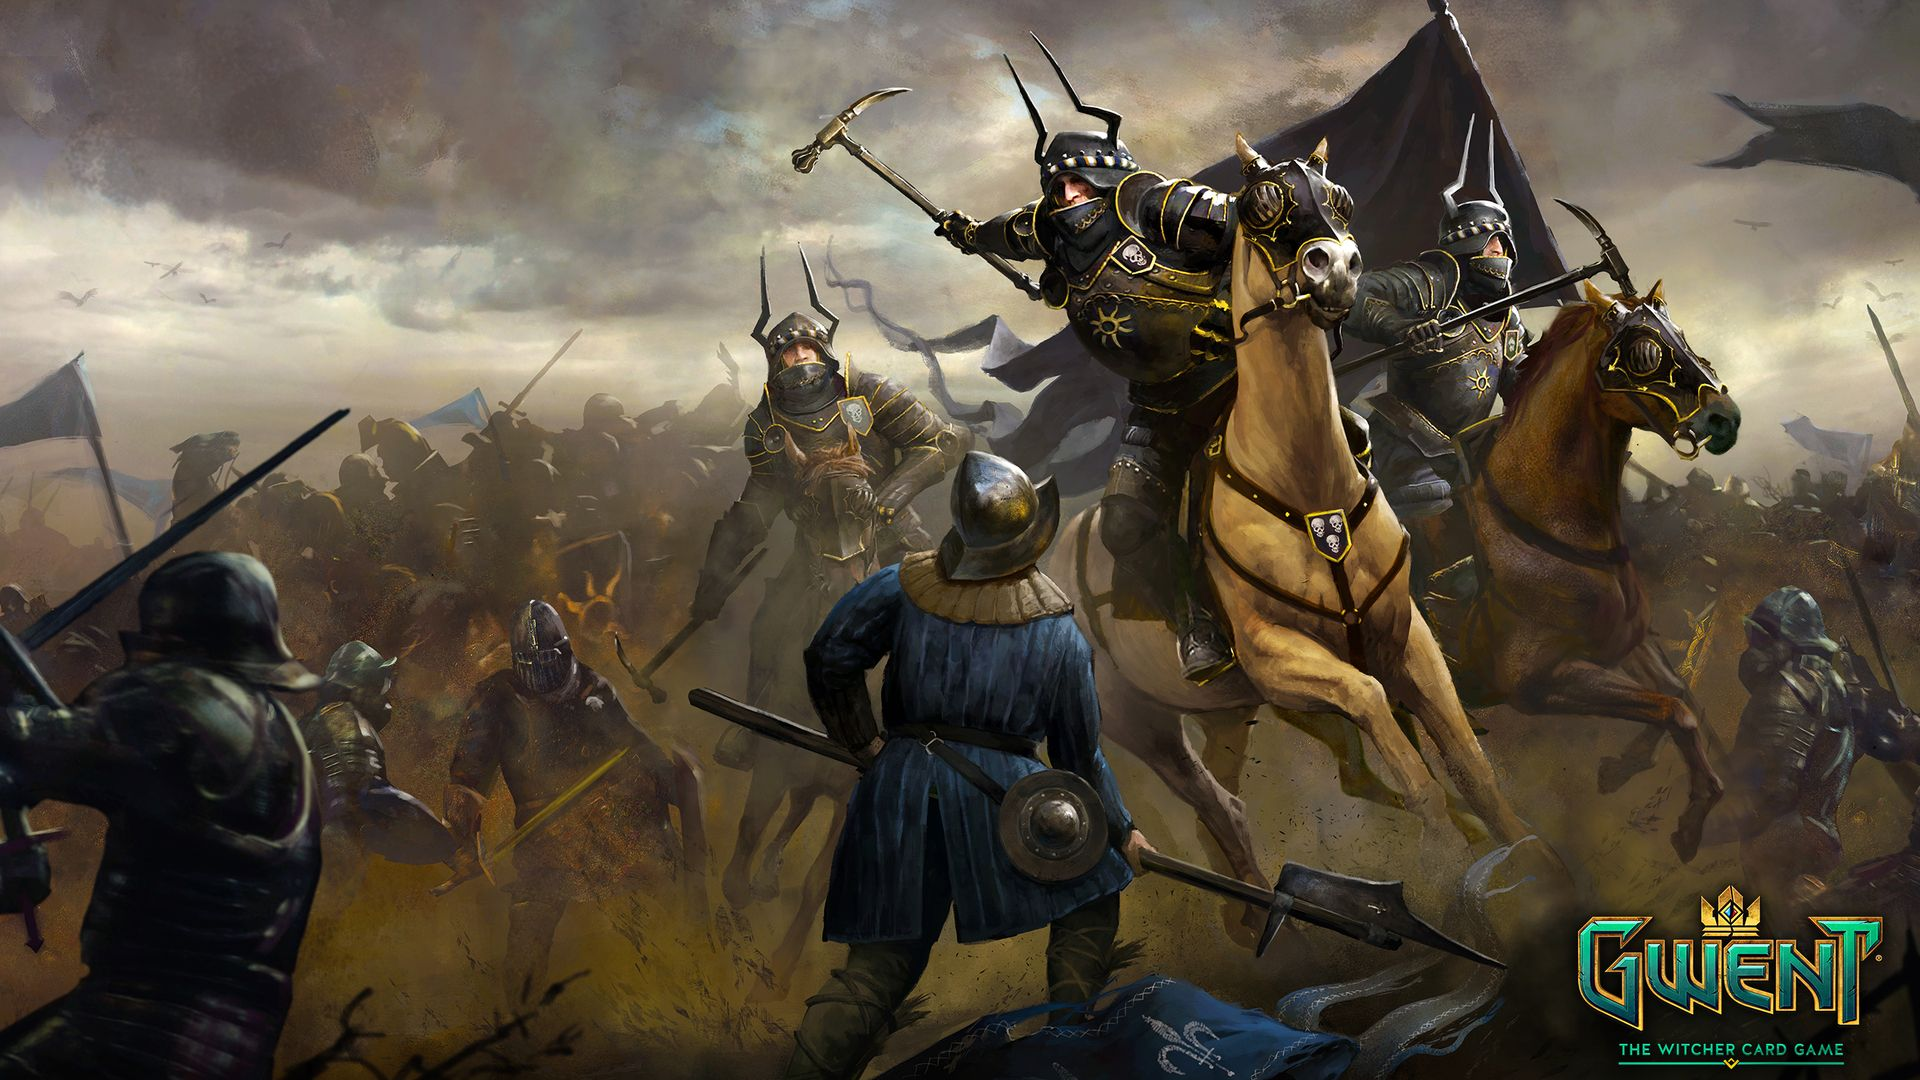 Nilfgaardian Army Desktop Wallpaper Gwint The Witcher Card Game The Witcher Fantasy Battle Witcher Art